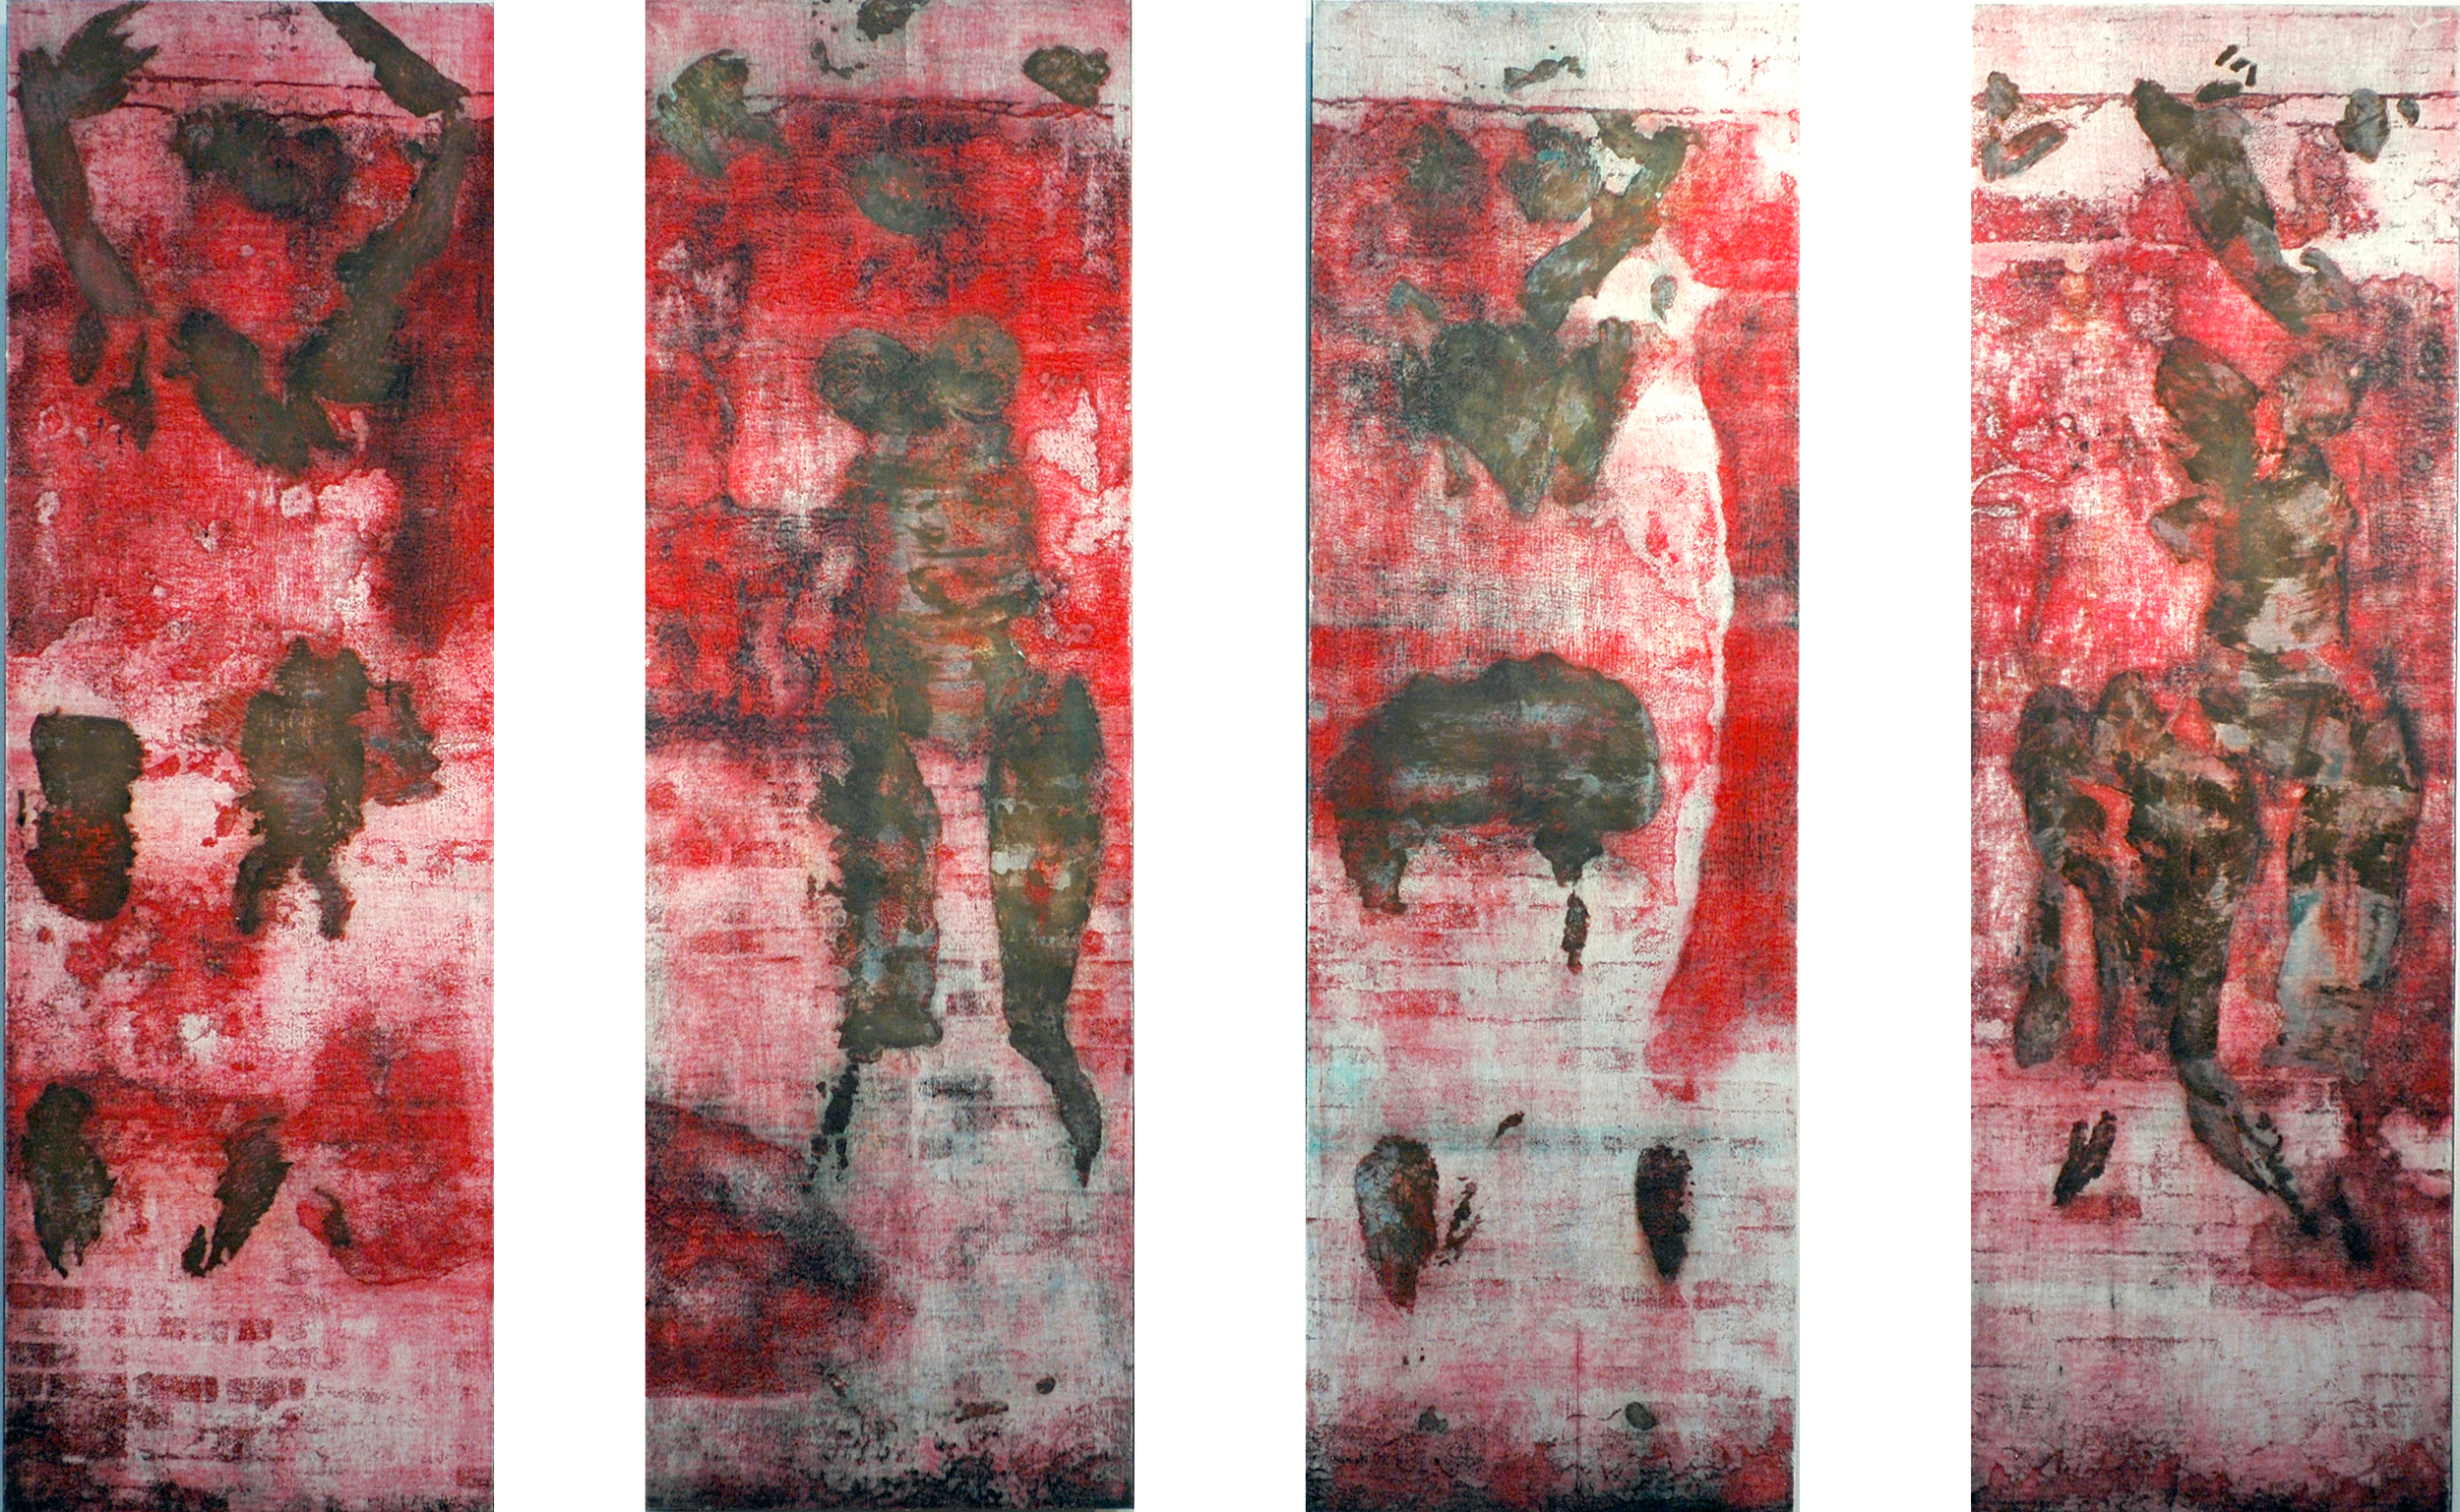 "Celeste                                                                                                                                                                                      woodcut images on paper, mounted on prepared board                                                                                                            ink, paper, metallic foil, wood                                                                                                                                                       6' 2"" X 12'    (4 panels)                                                                                                                                                                     2004"